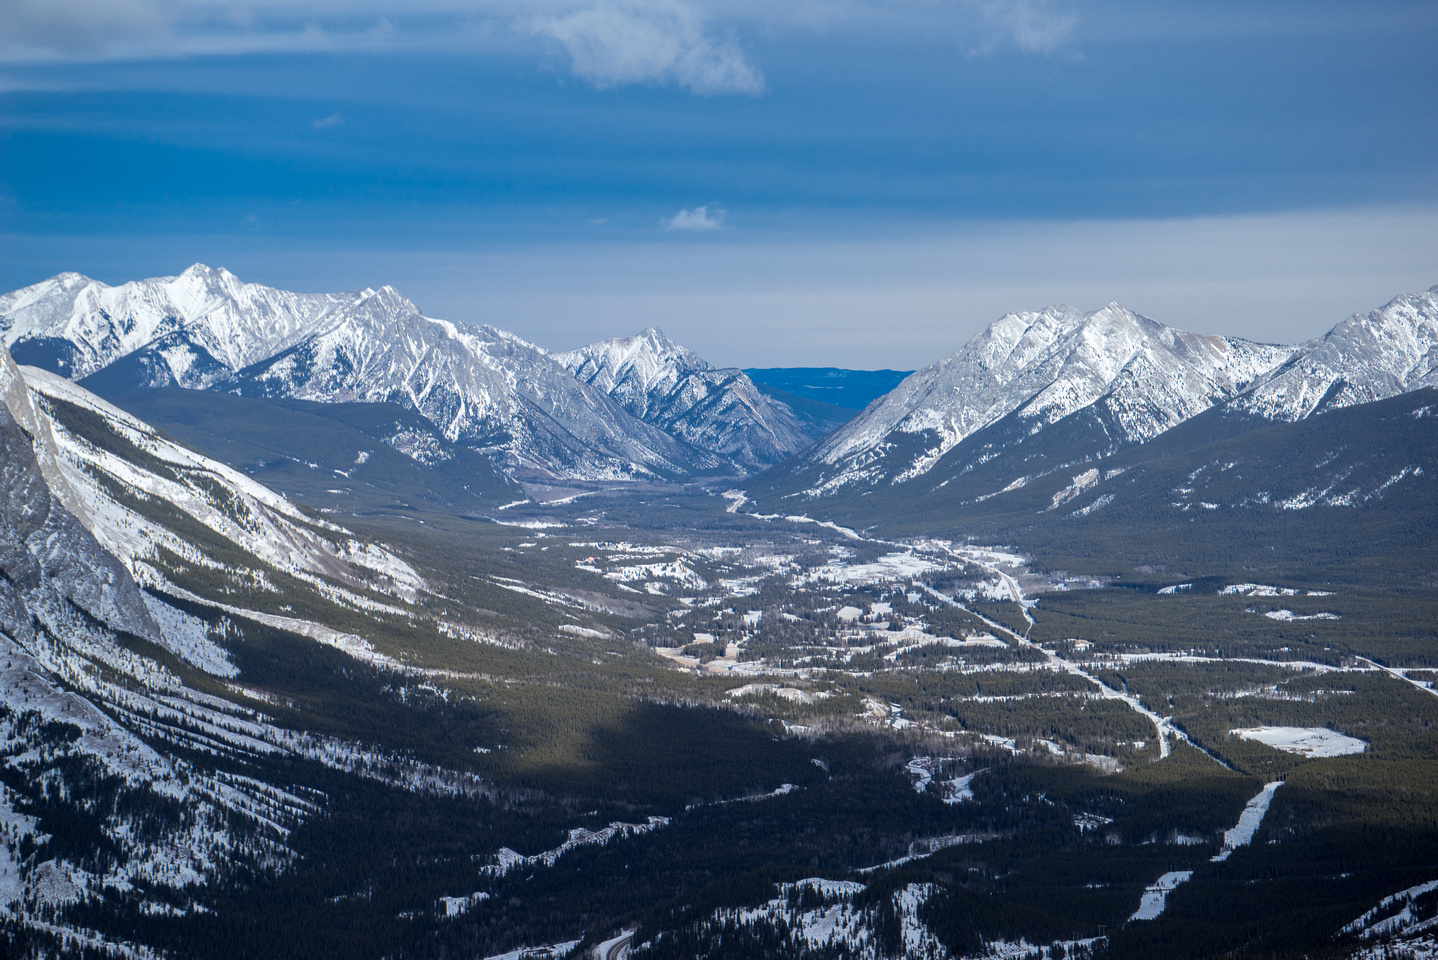 Looking through the gap - between Lorette and Baldy.